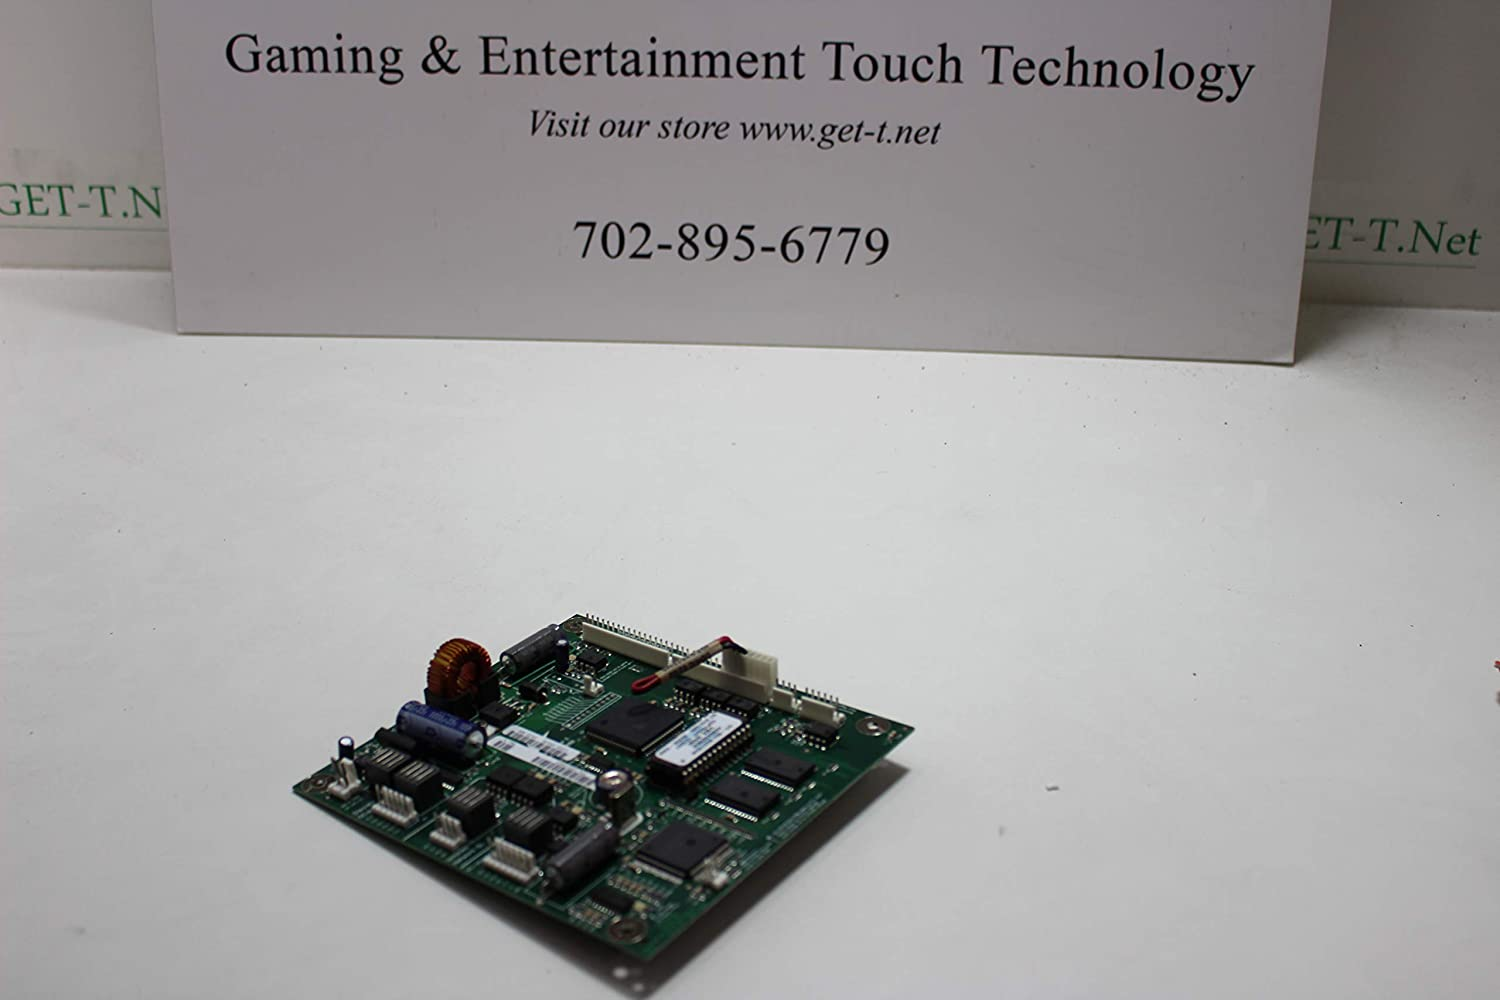 GETT BE2 Communications Board for Tracking Fort Worth Mall Player Max 74% OFF